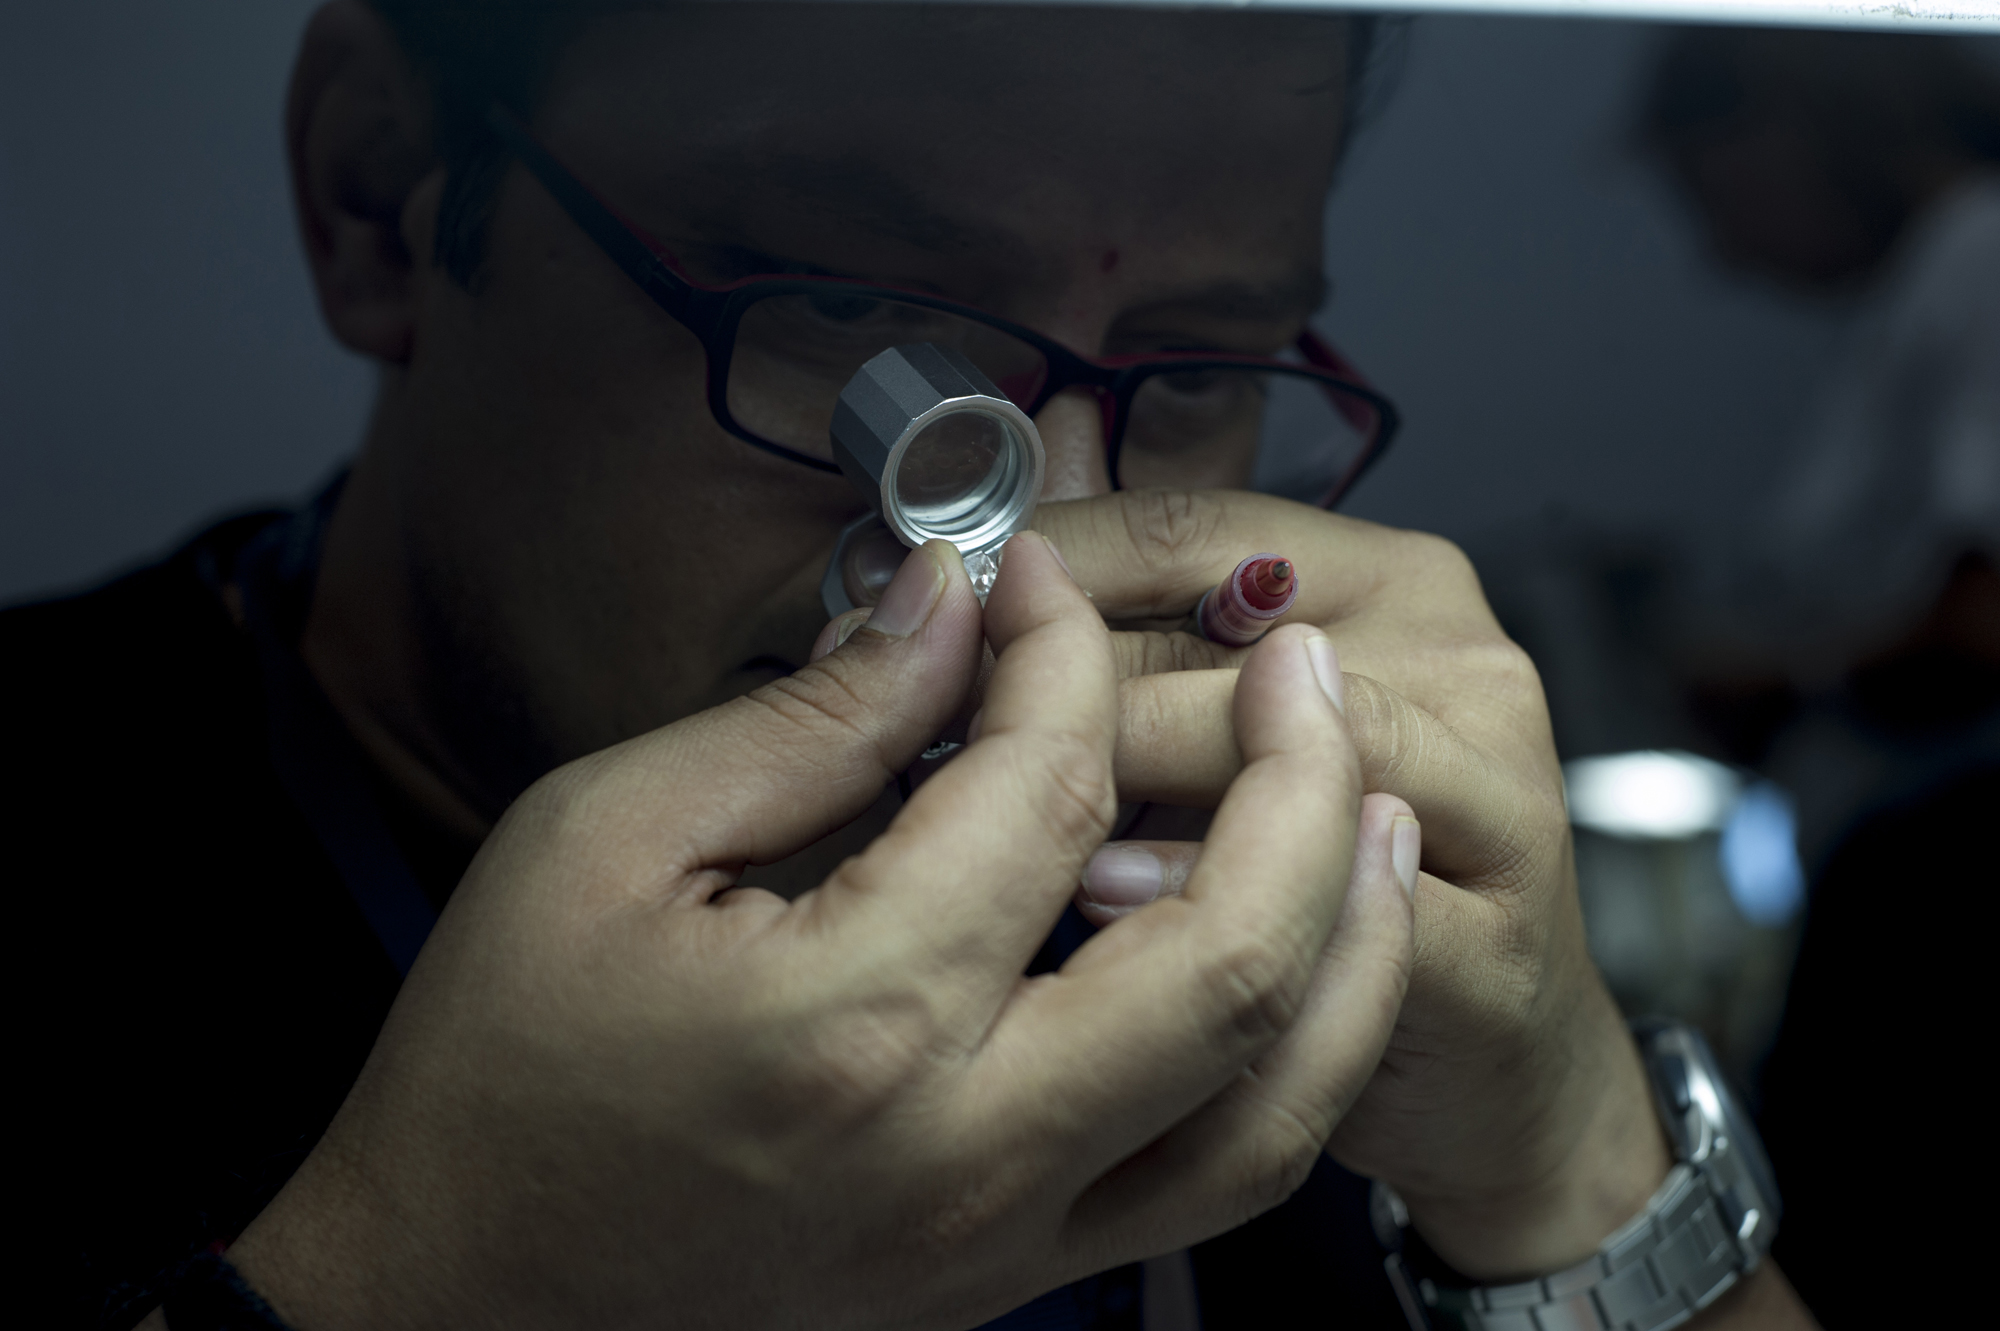 Pragnesh Shah examines a stone at Dimotech, Armenia's second largest diamond-refining factory. (Nazik Armanakyan)